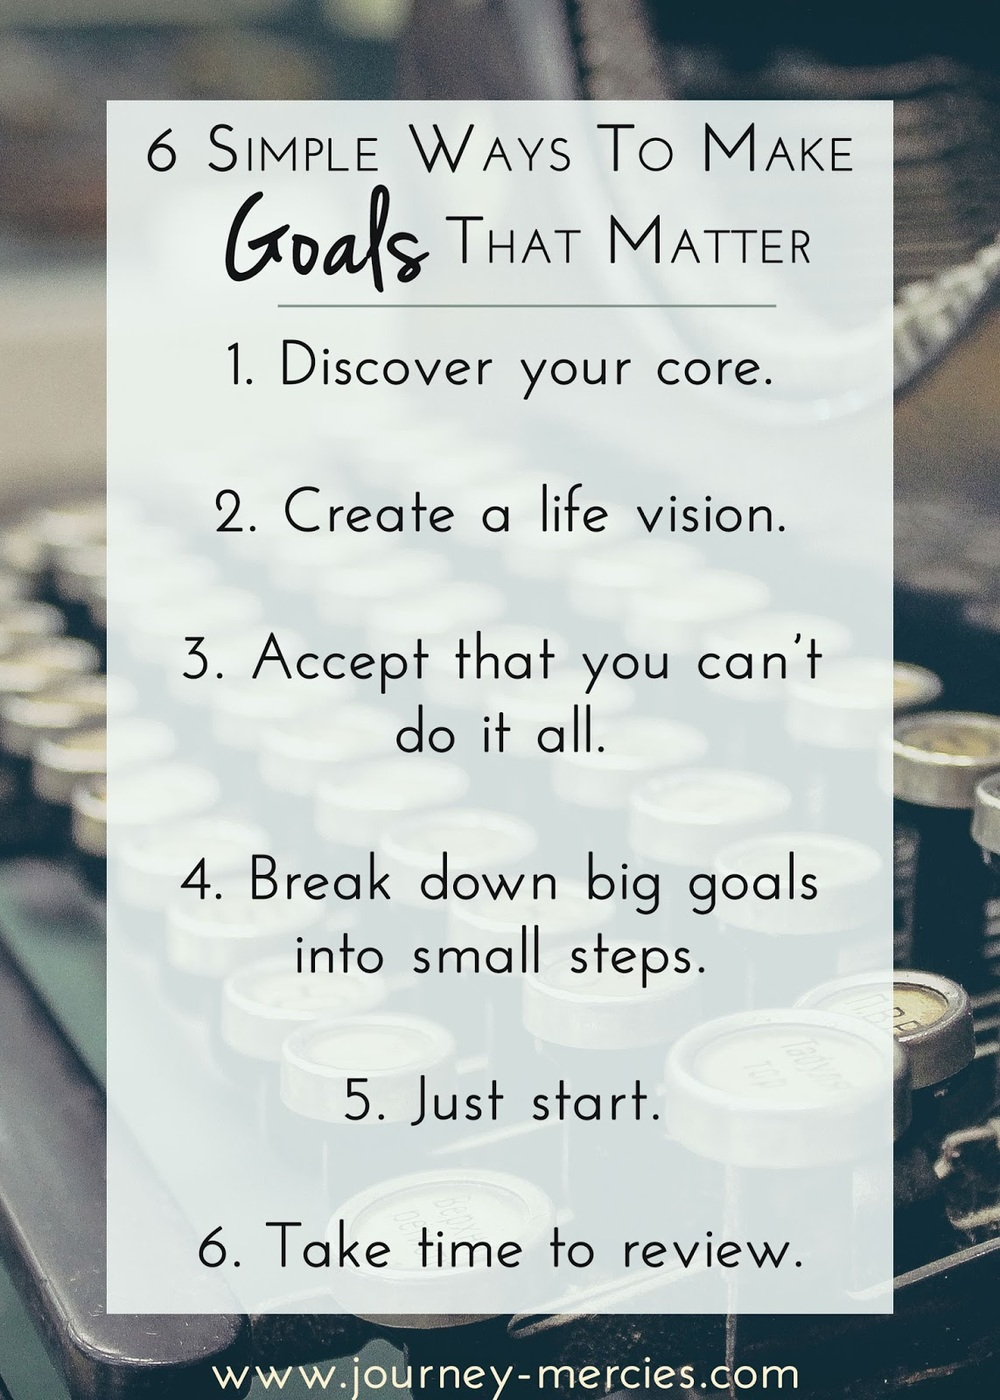 6-ways-list-goals-1-aug-2014.jpg